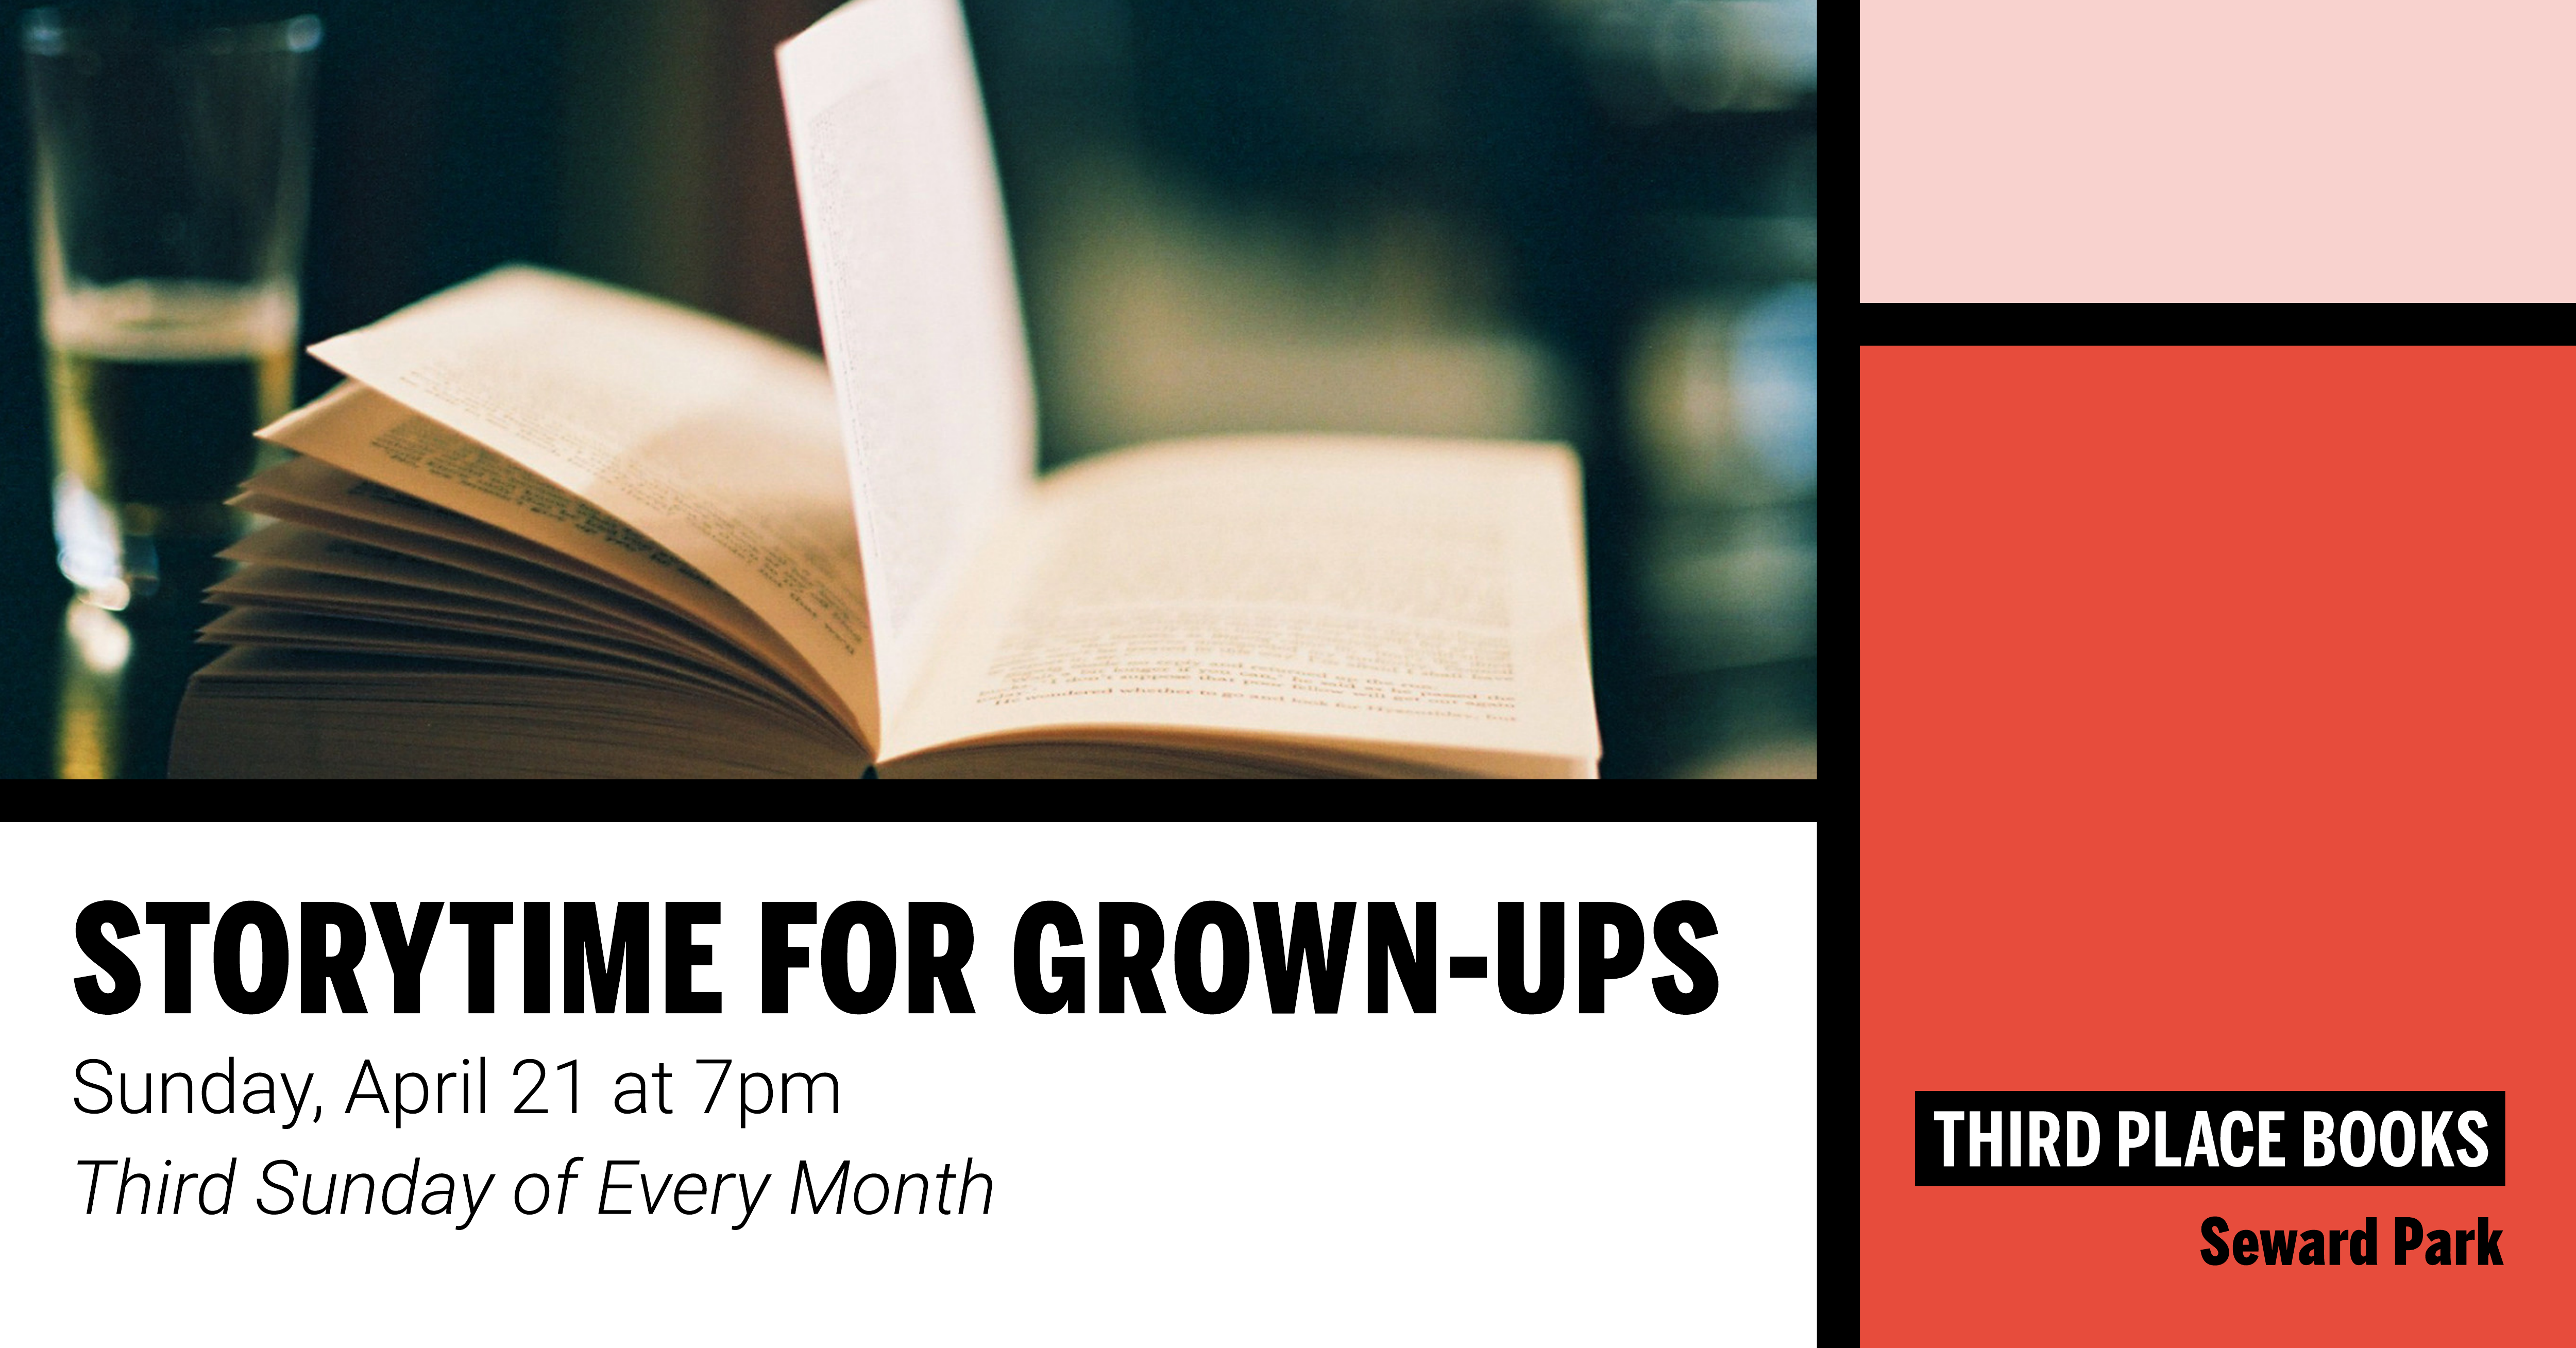 Story Time for Grown Ups! on Sunday, April 21 at 7pm